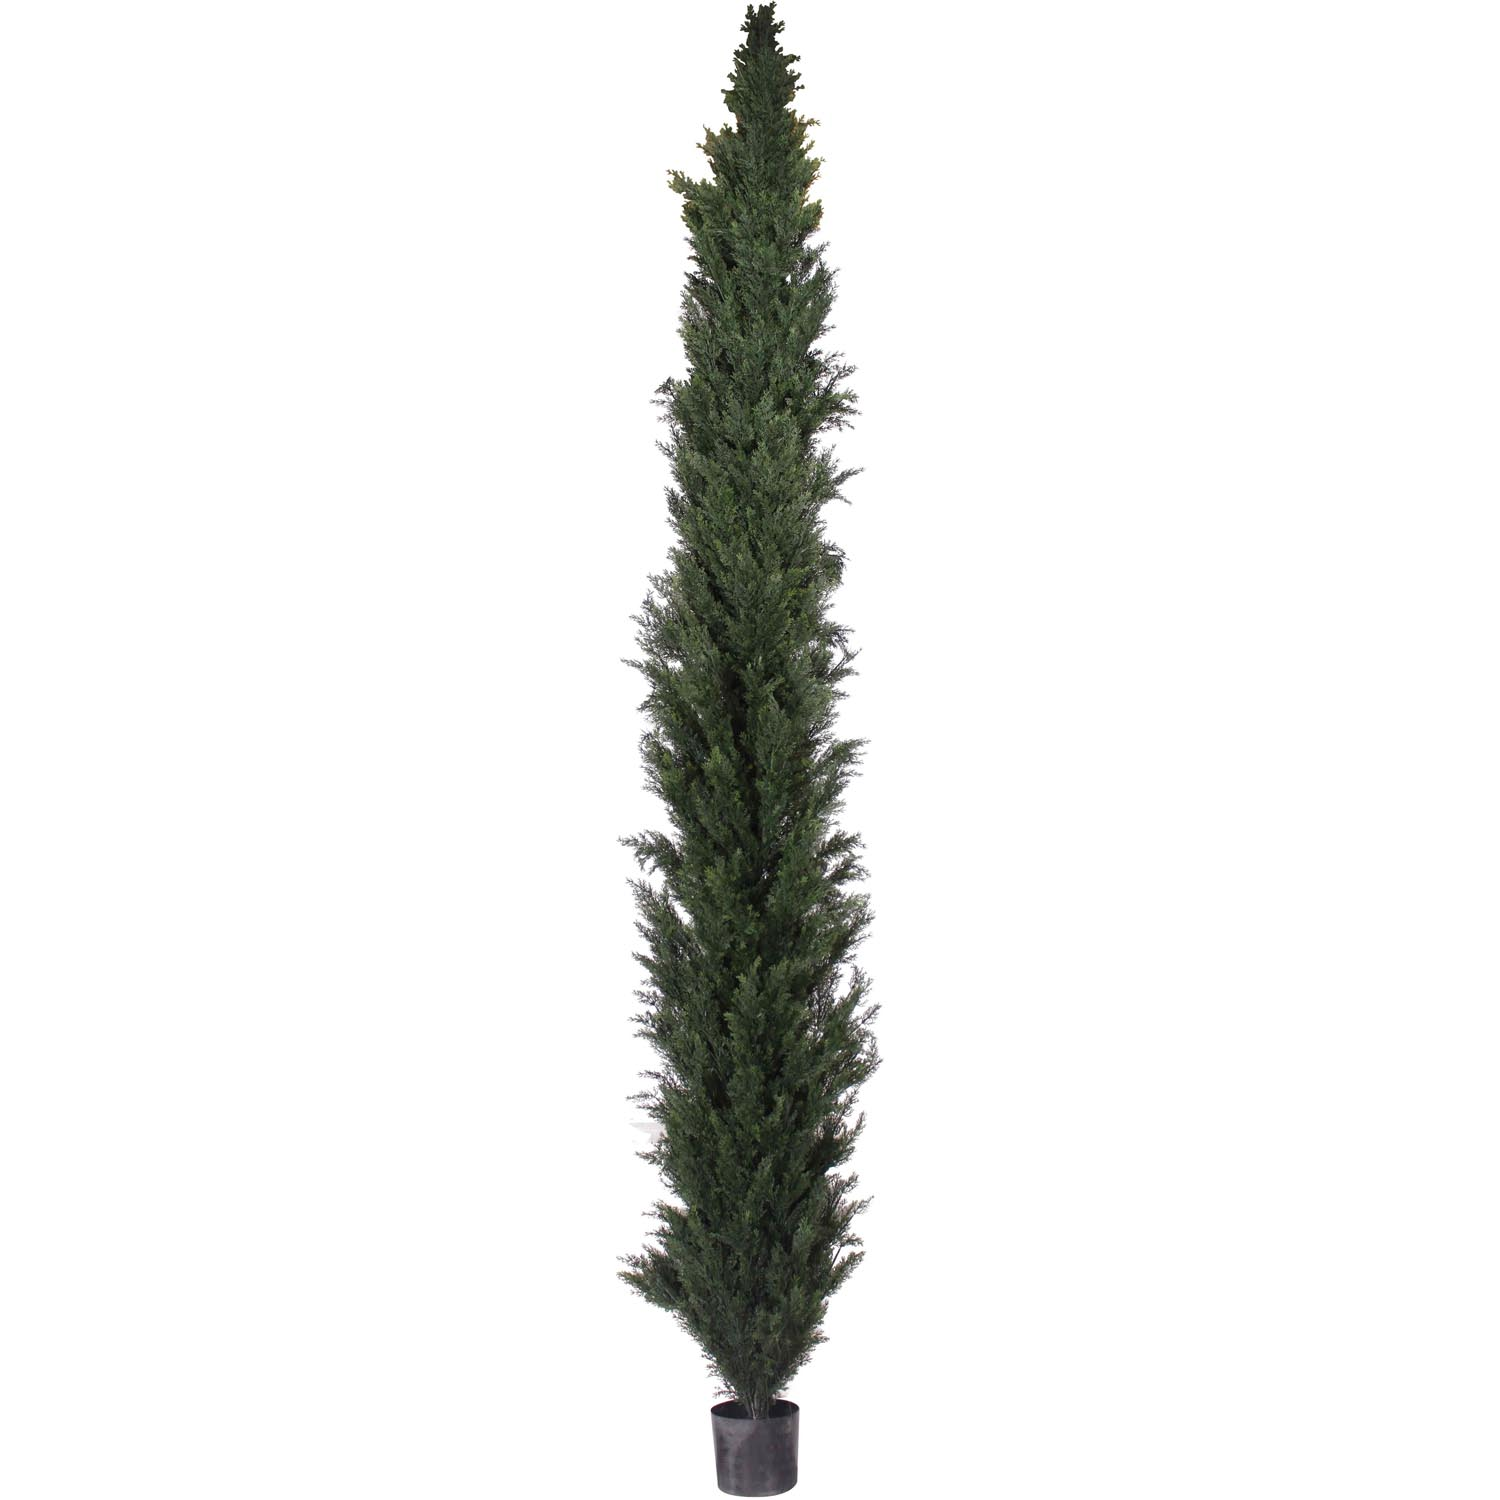 10 Foot Slim Uv Protected Cedar Pine Tree: Potted